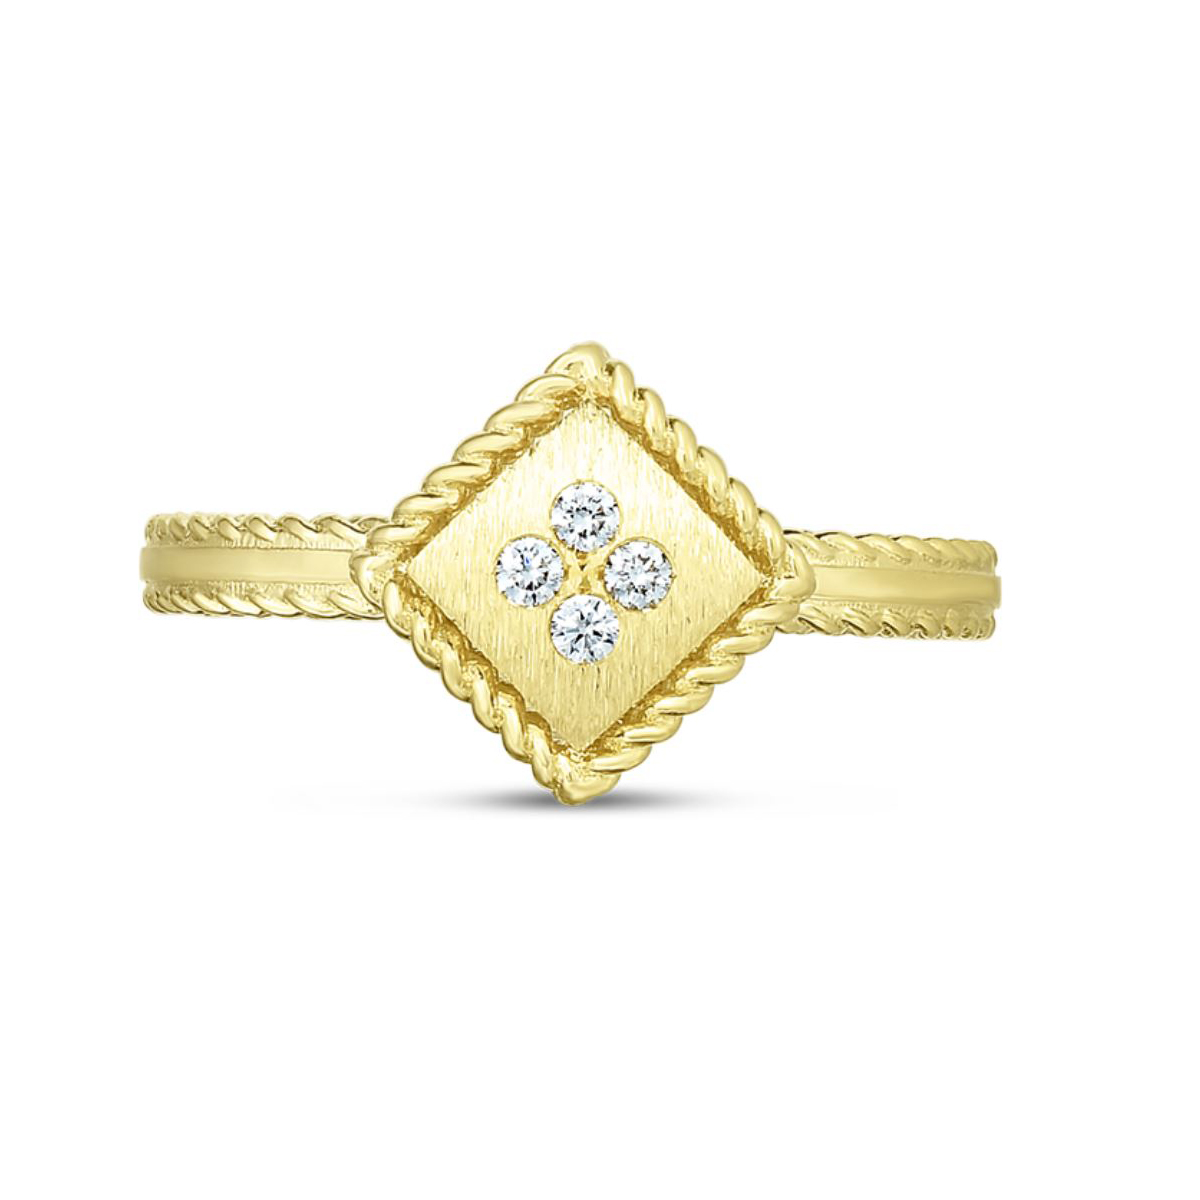 Roberto Coin 18 Karat Yellow Gold and diamond Palazzo Ducale Square Ring